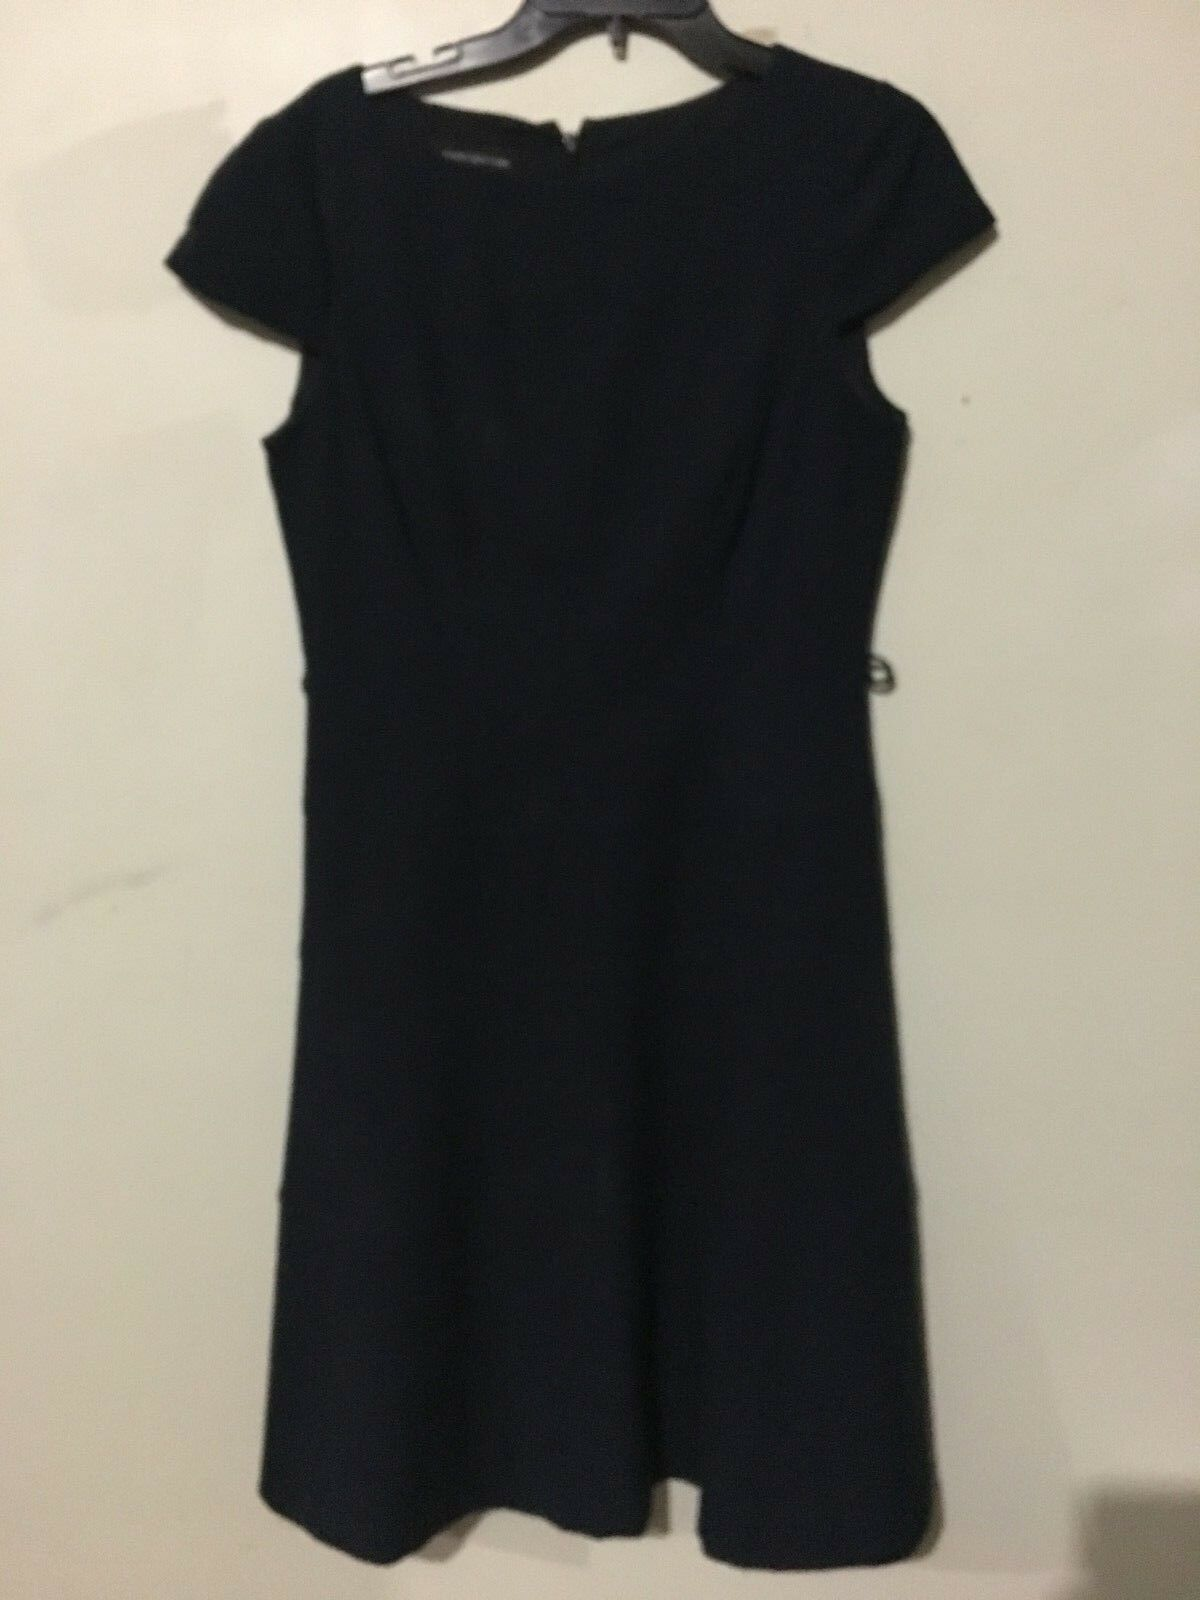 Jones New York schwarz Cap Sleeve Dress damen Größe 10 Cocktail Formal RN 54050